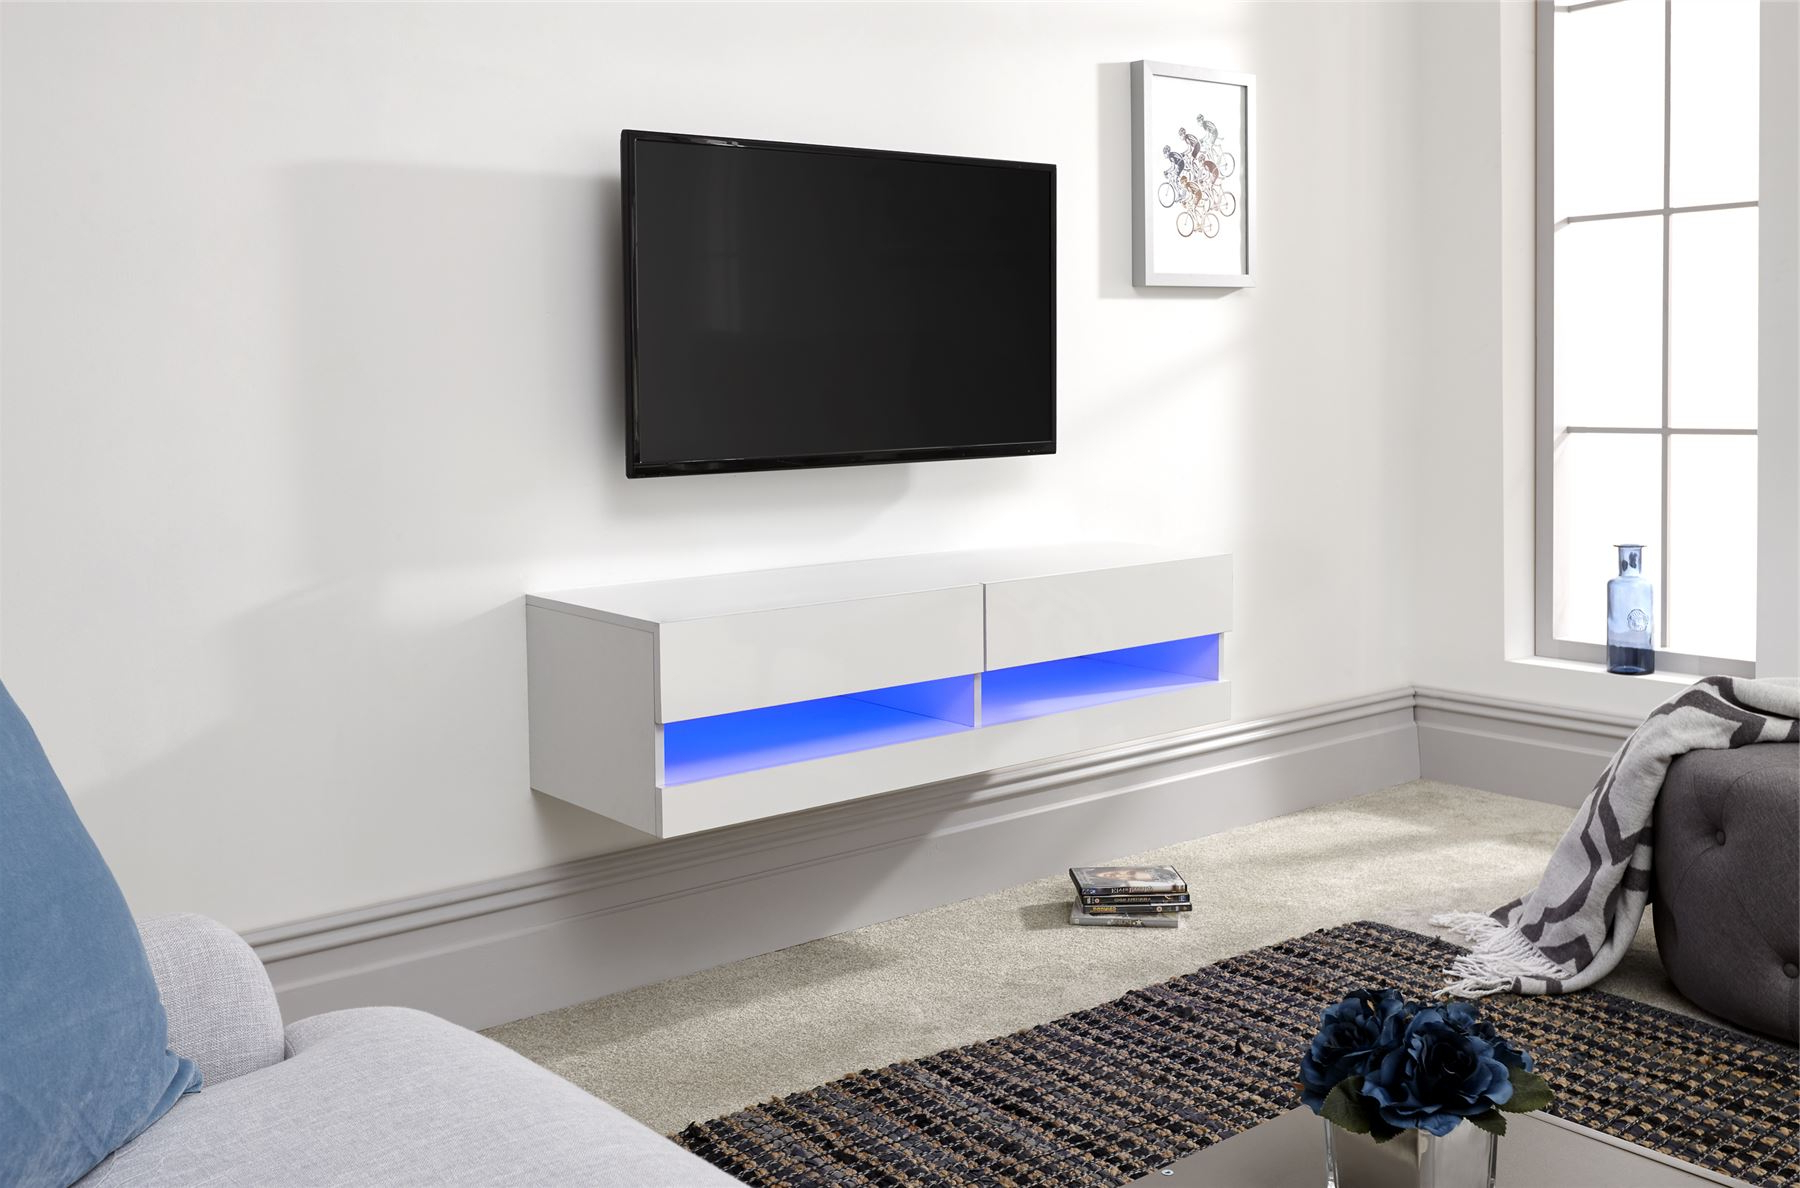 Galicia 120cm 150cm 180cm Wall Tv Unit Stand W/ Led Lcd Throughout Preferred Galicia 180cm Led Wide Wall Tv Unit Stands (View 4 of 10)